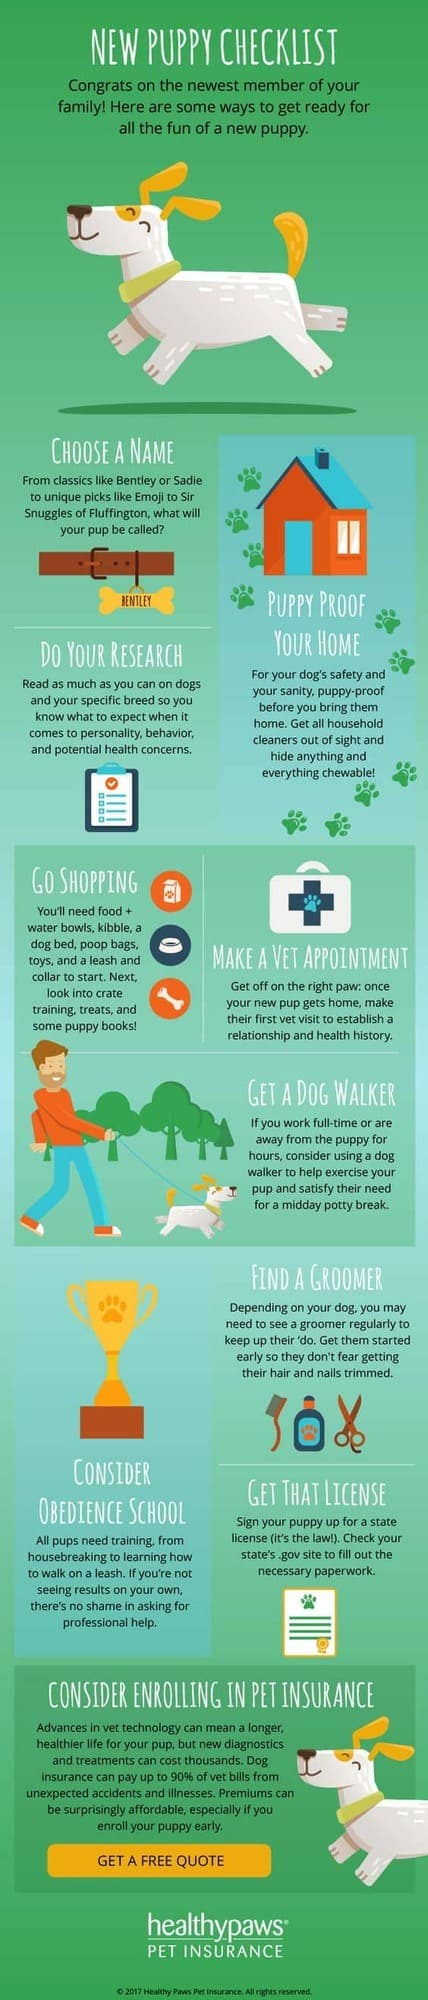 New Puppy Checklist| Dog Hacks to save your sanity